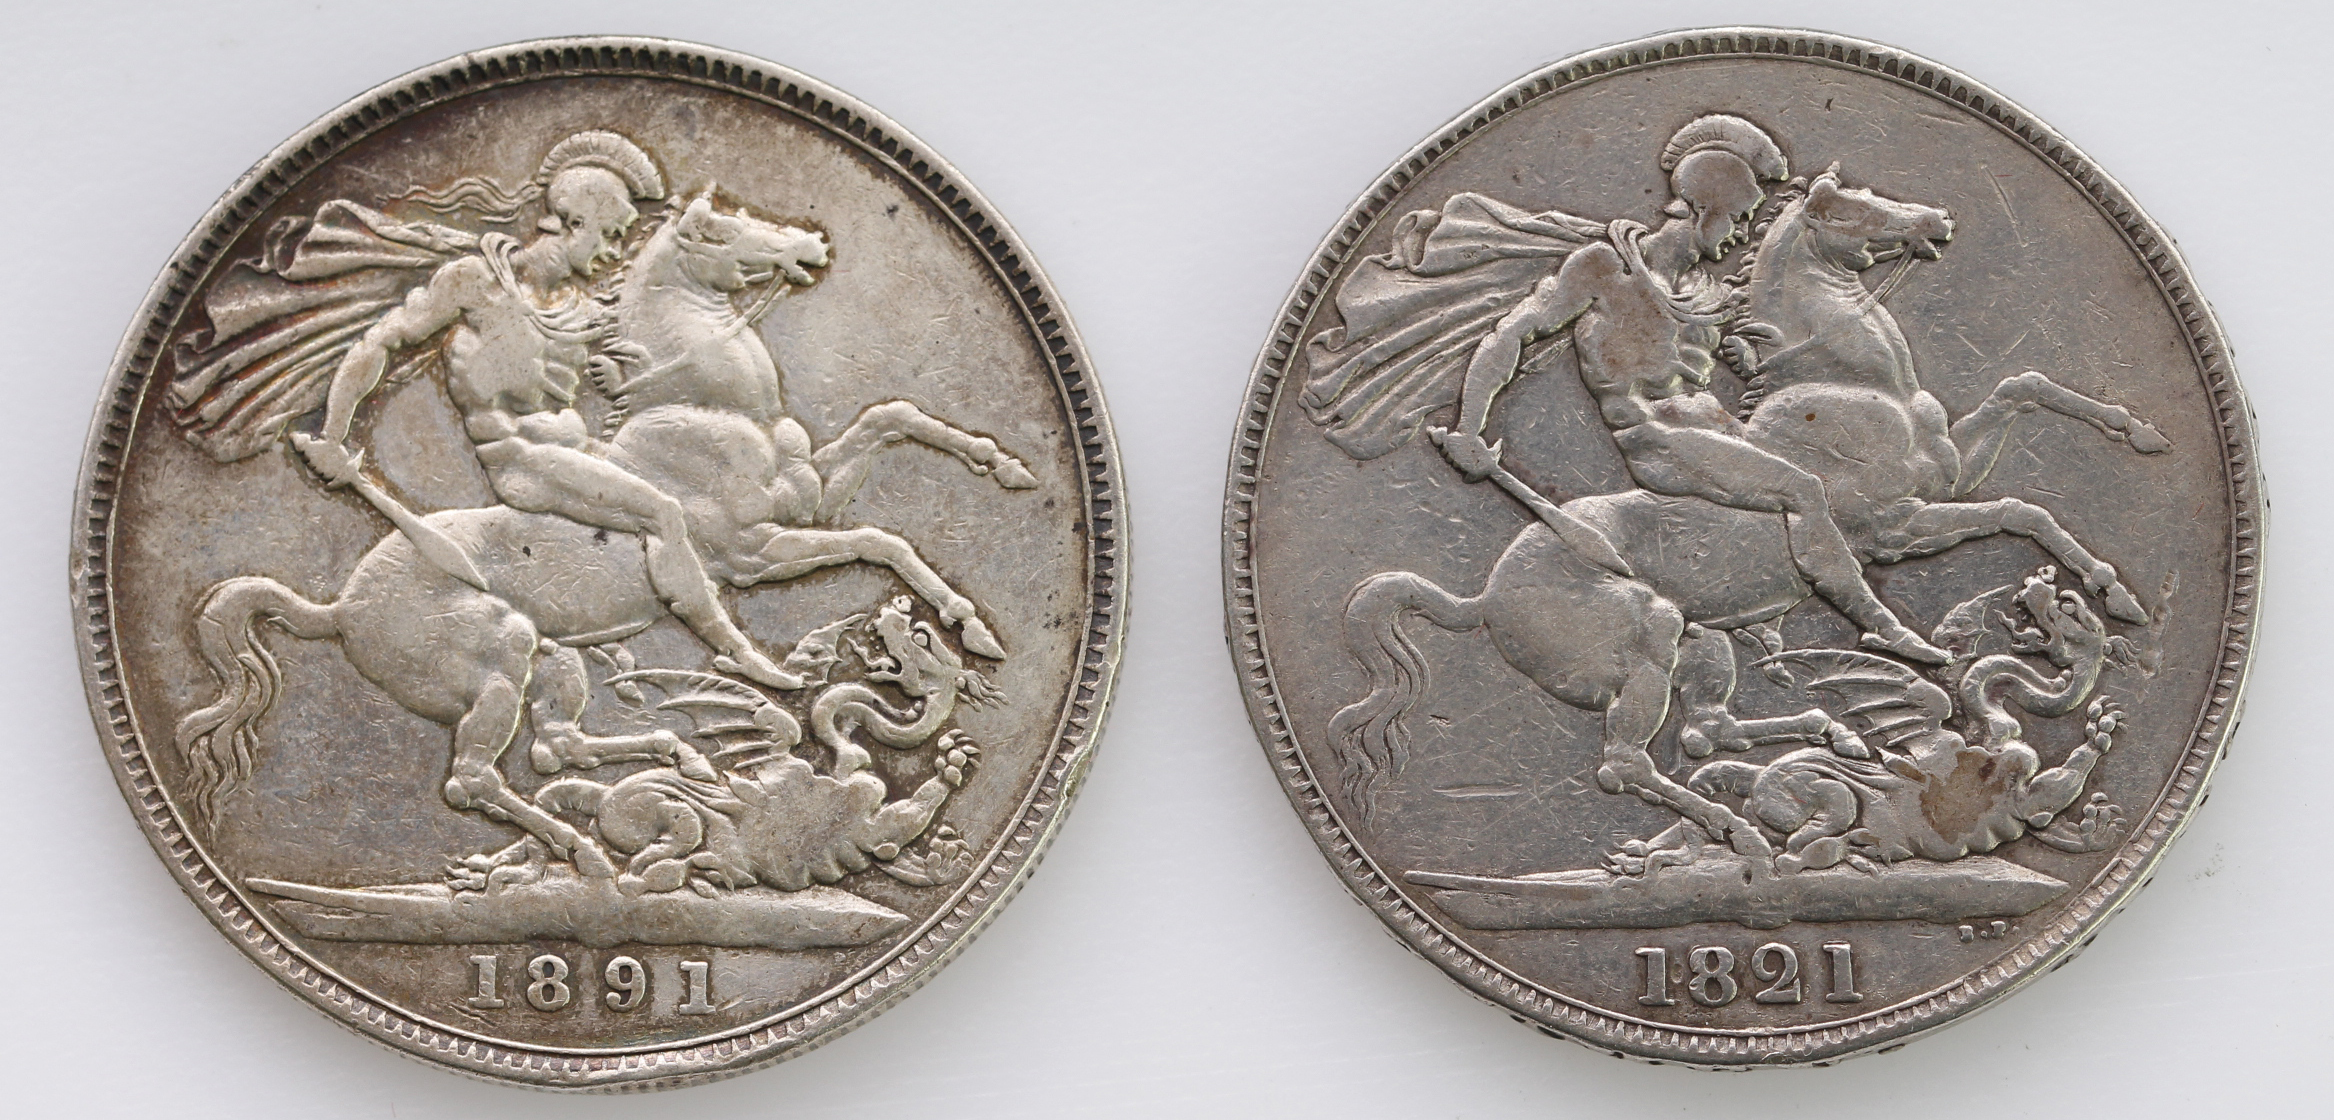 Crowns (2): 1821 Secundo Fine, and 1891 GF - Image 2 of 2